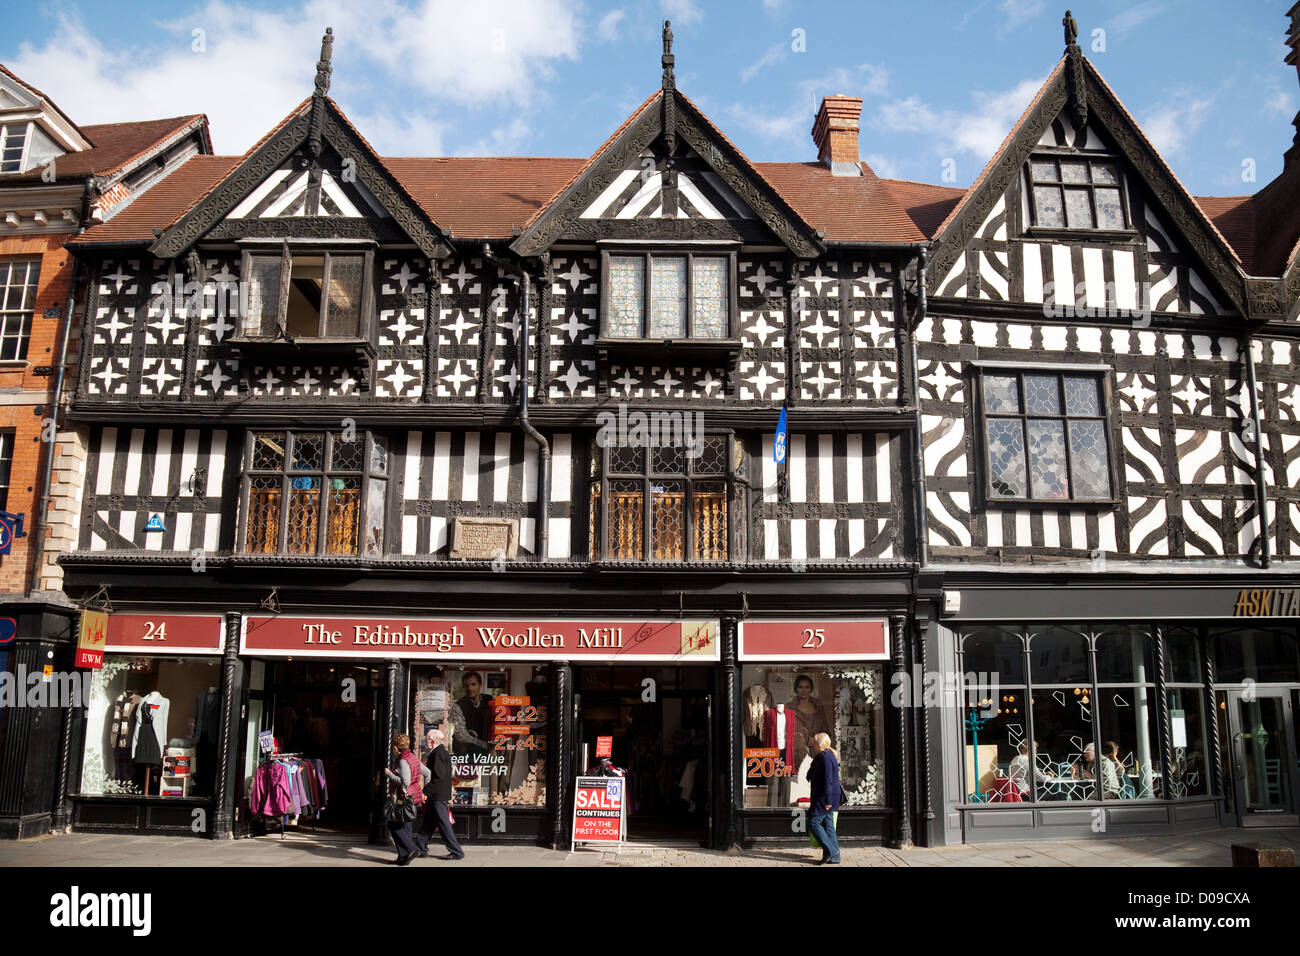 Medieval half timbered buildings in Shrewsbury city centre, Shropshire UK - Stock Image